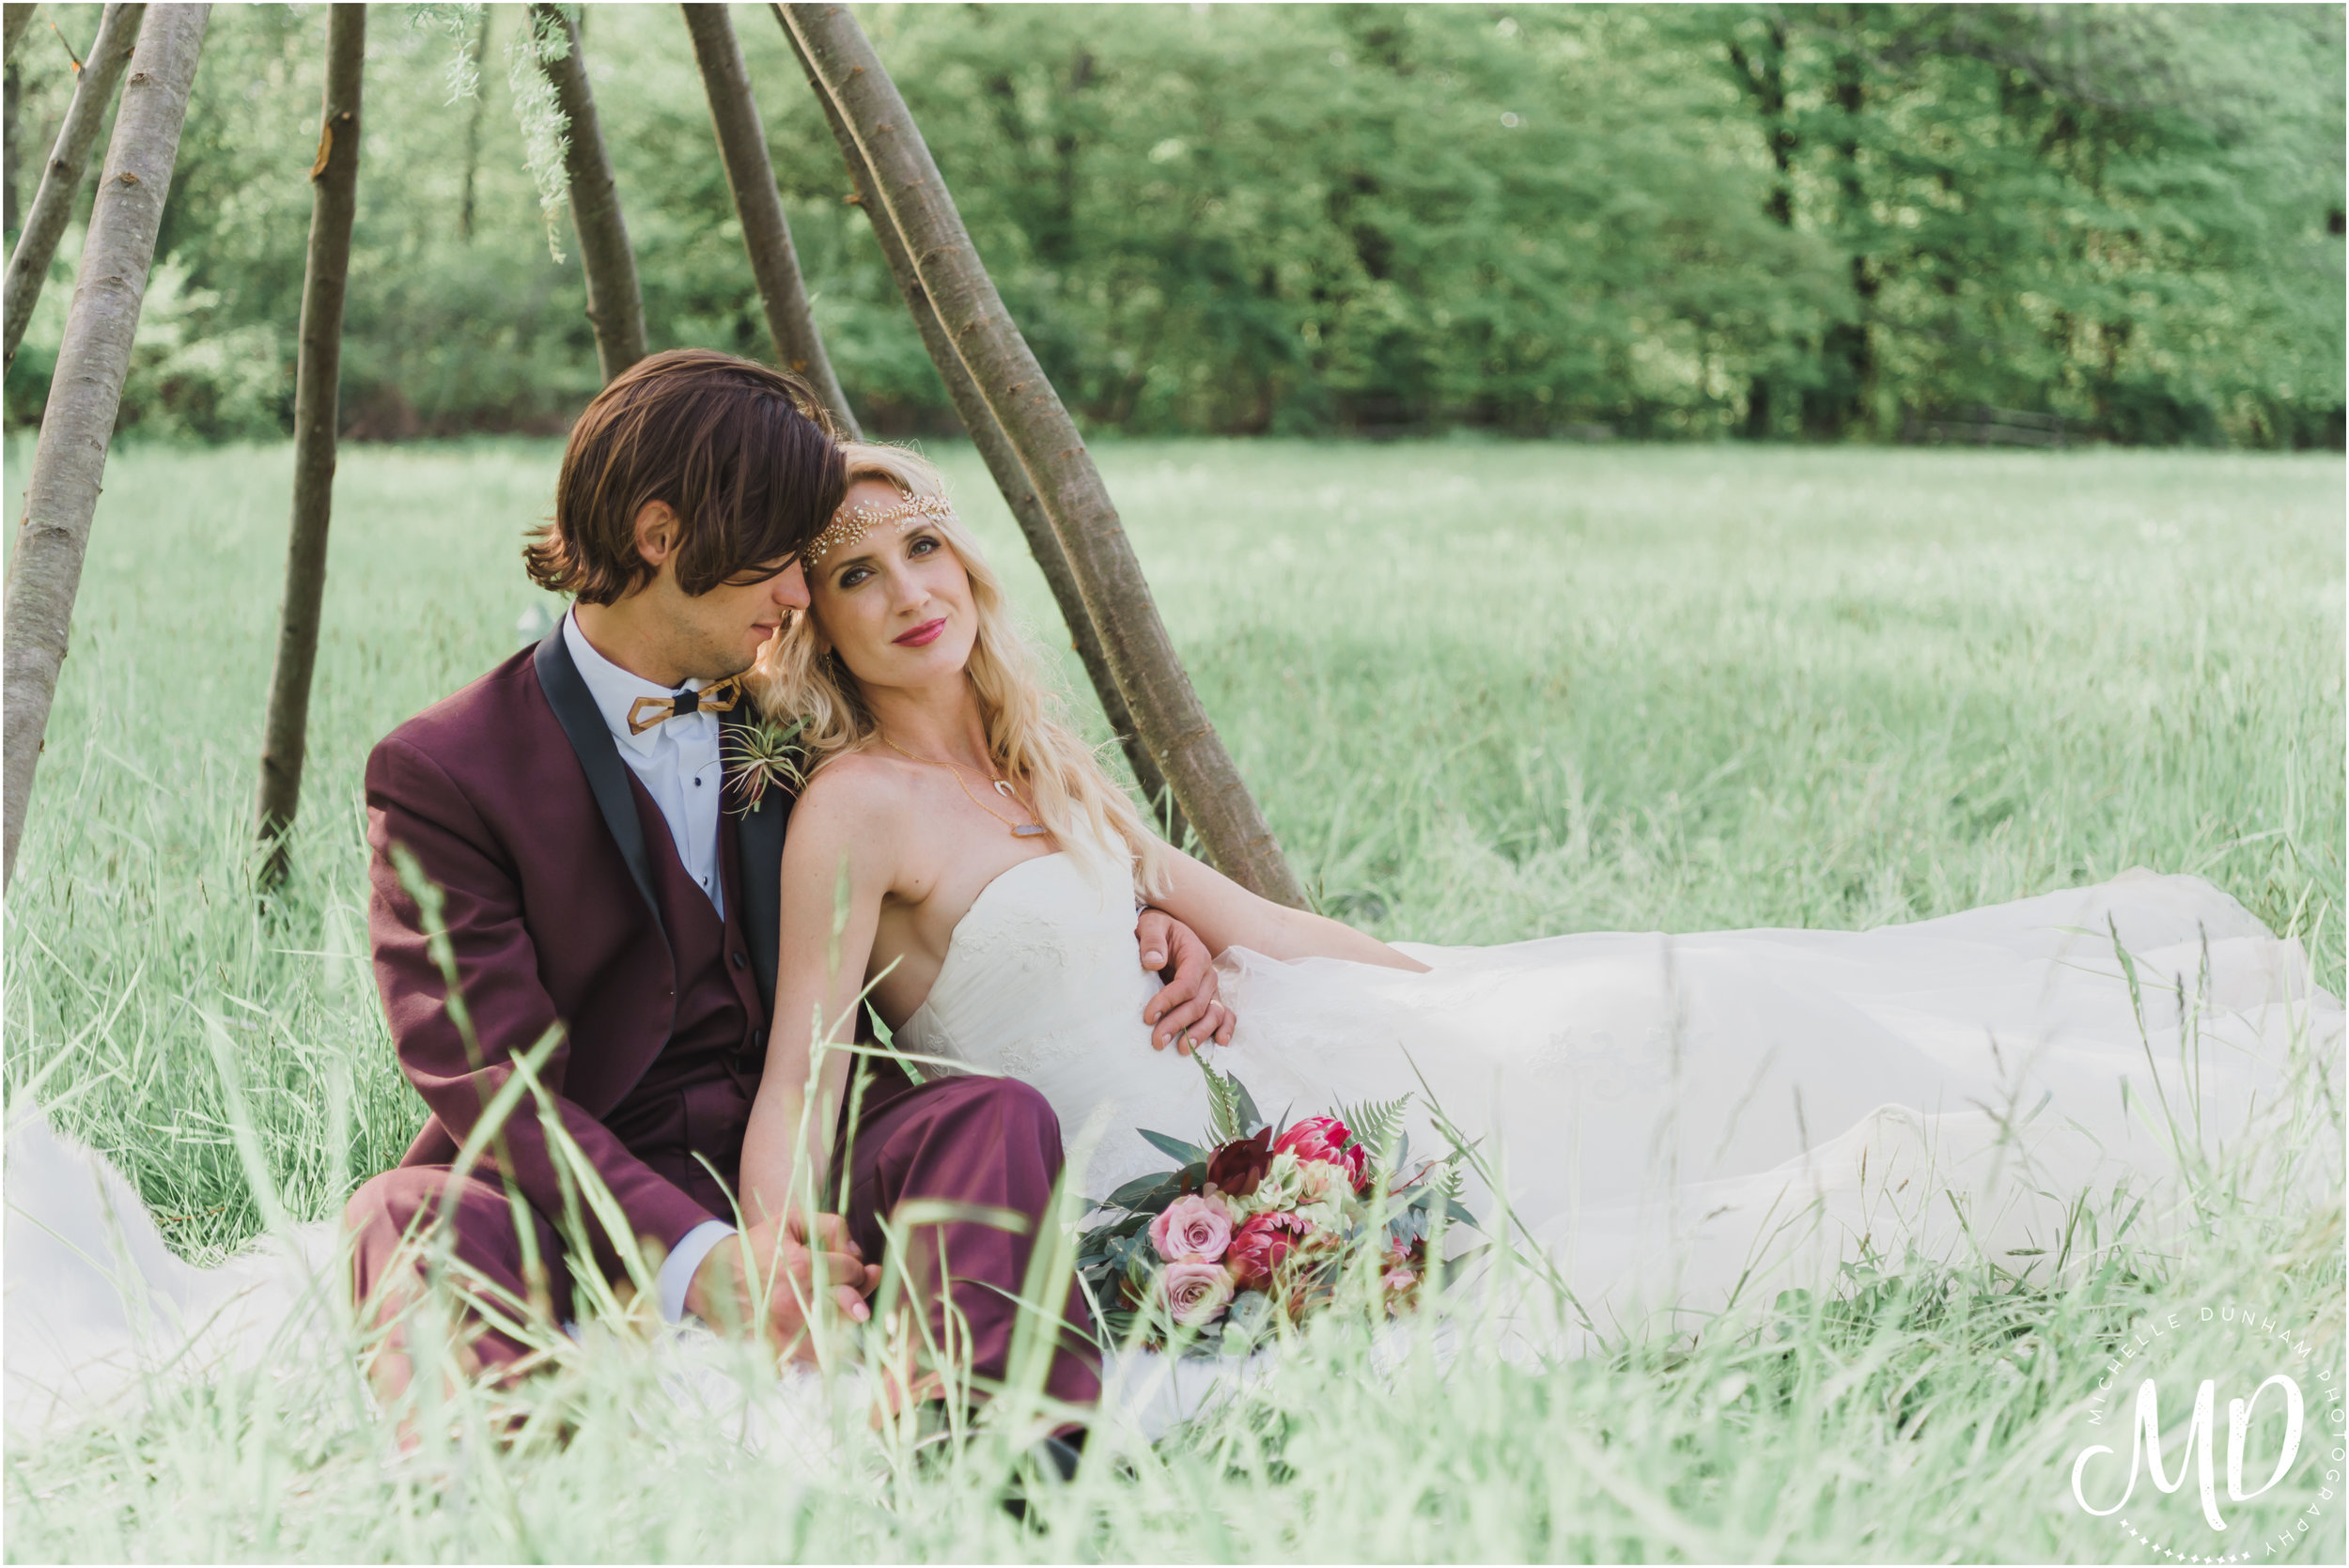 Michelle Dunham Photography_Boho_BrideandGroom_6.jpg